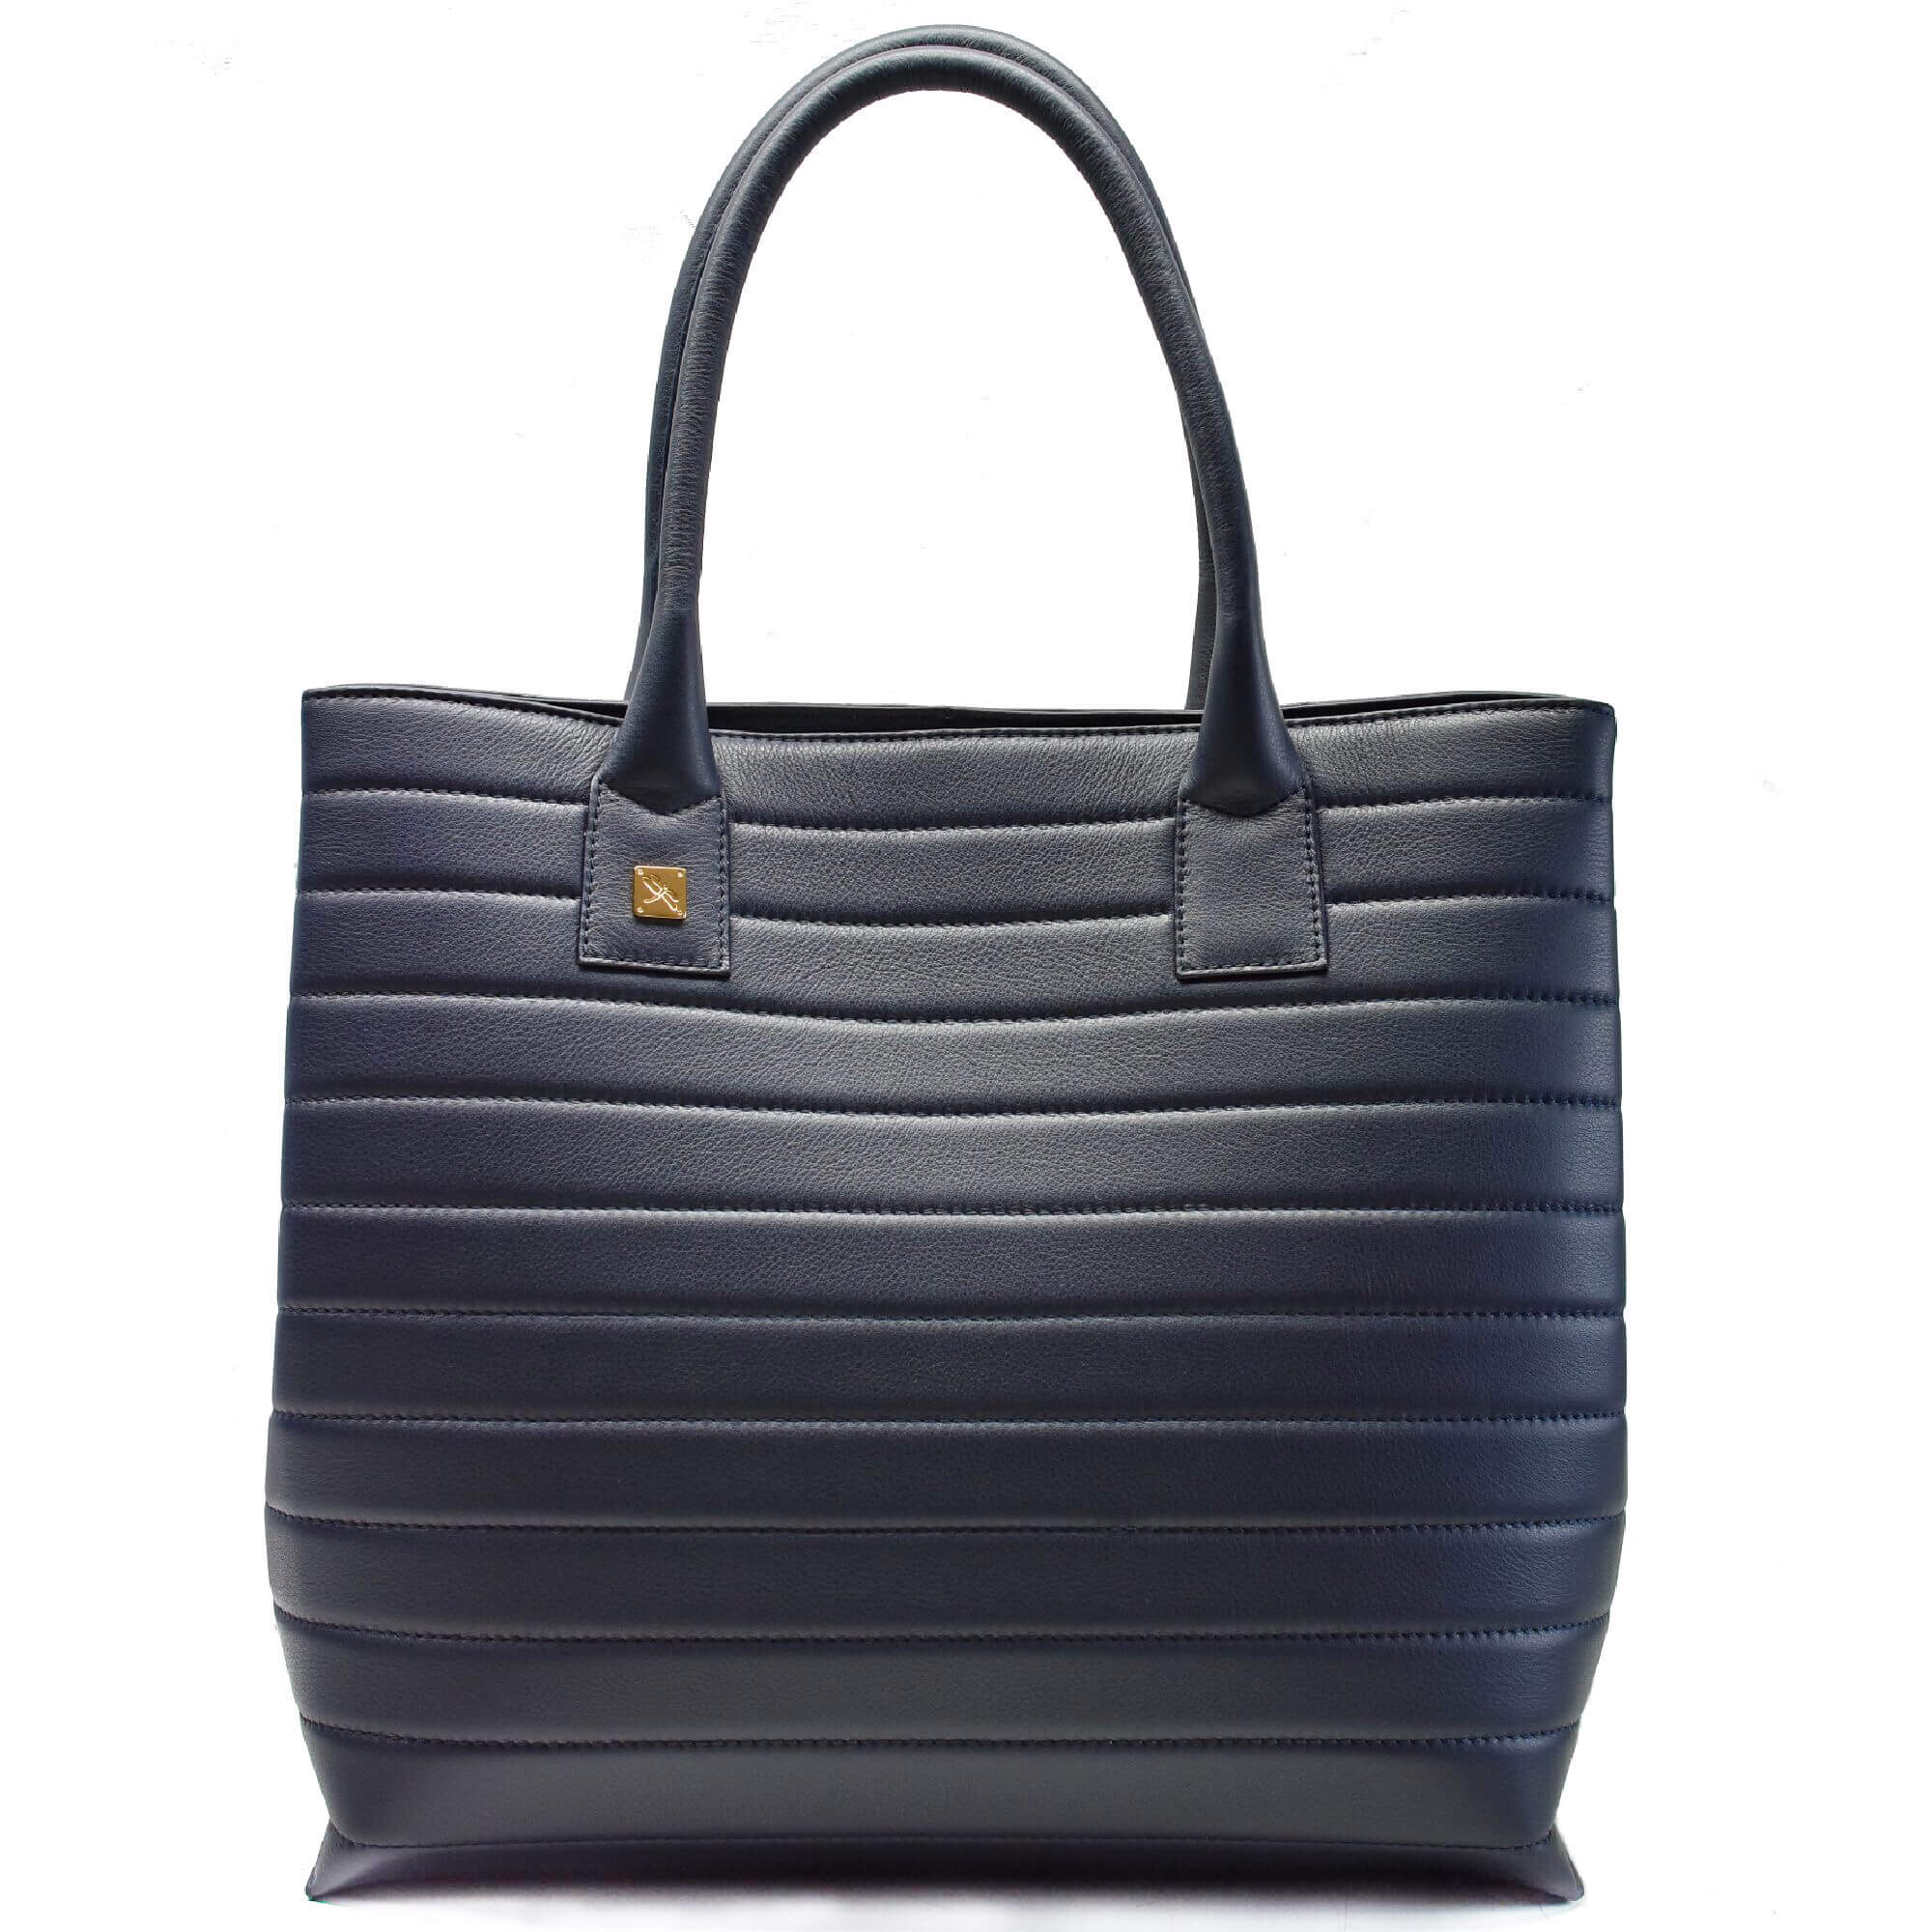 Navy Tote Leather Handbag. Natalia M